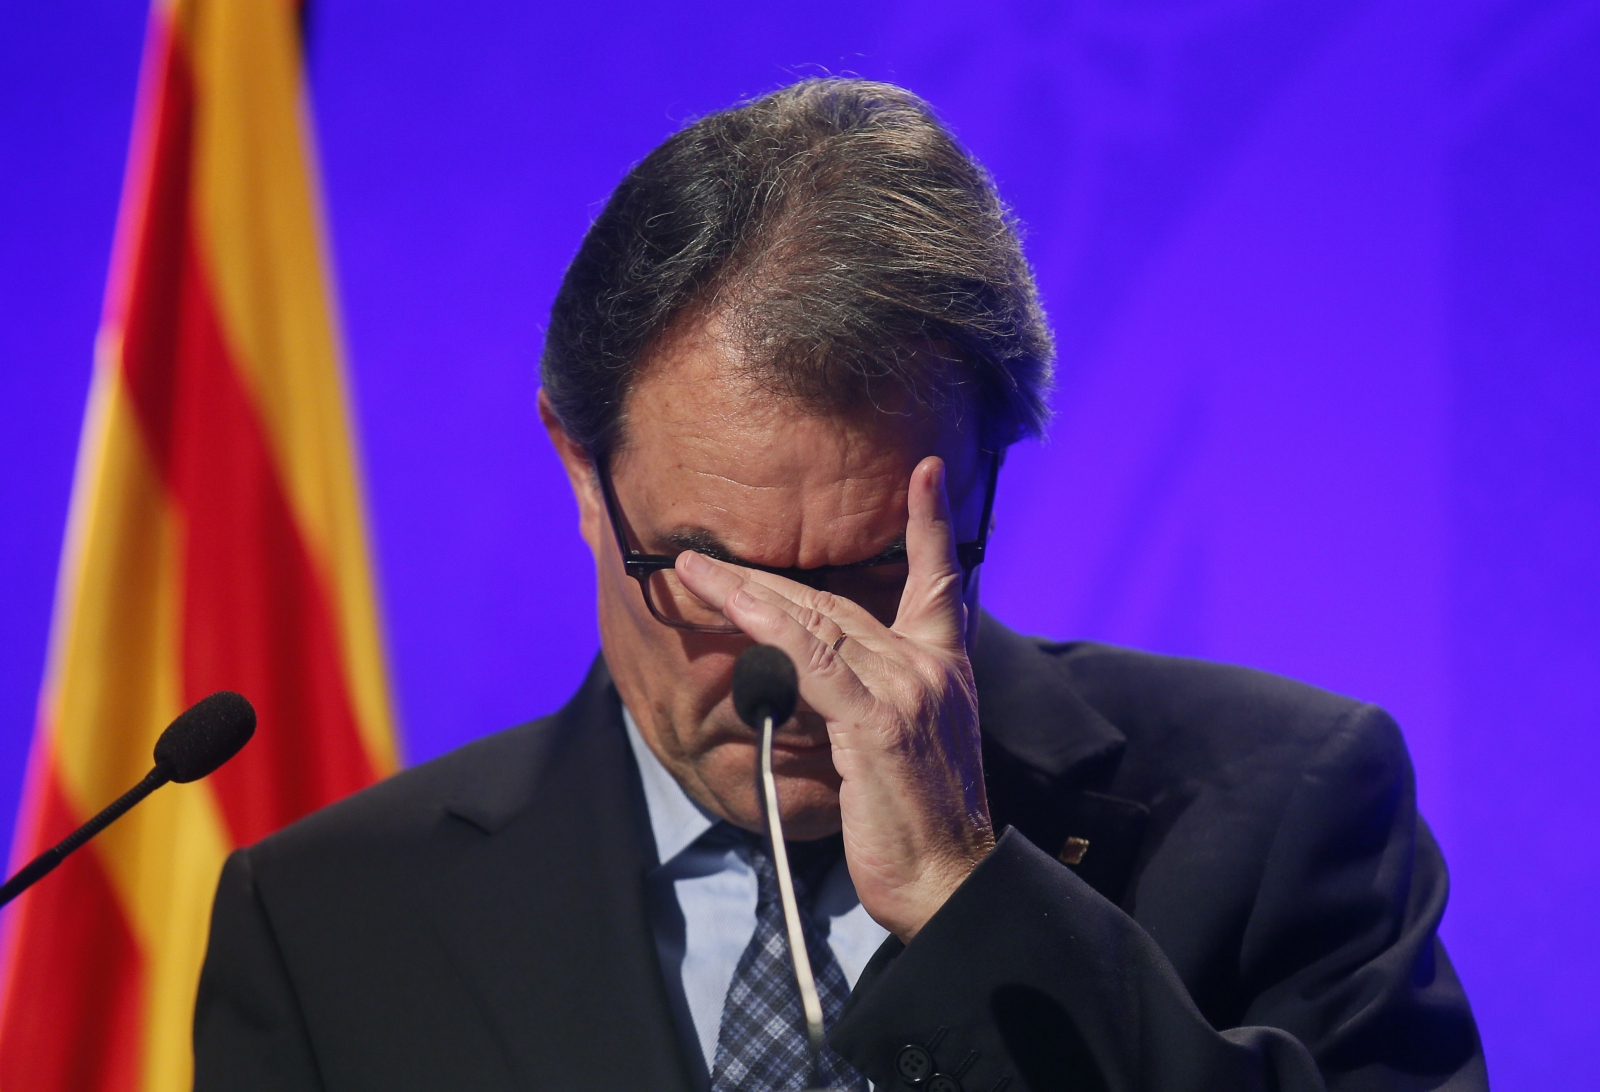 Catalan President Artur Mas gestures during a news conference at Palau de la Generalitat in Barcelona, November 11, 2014